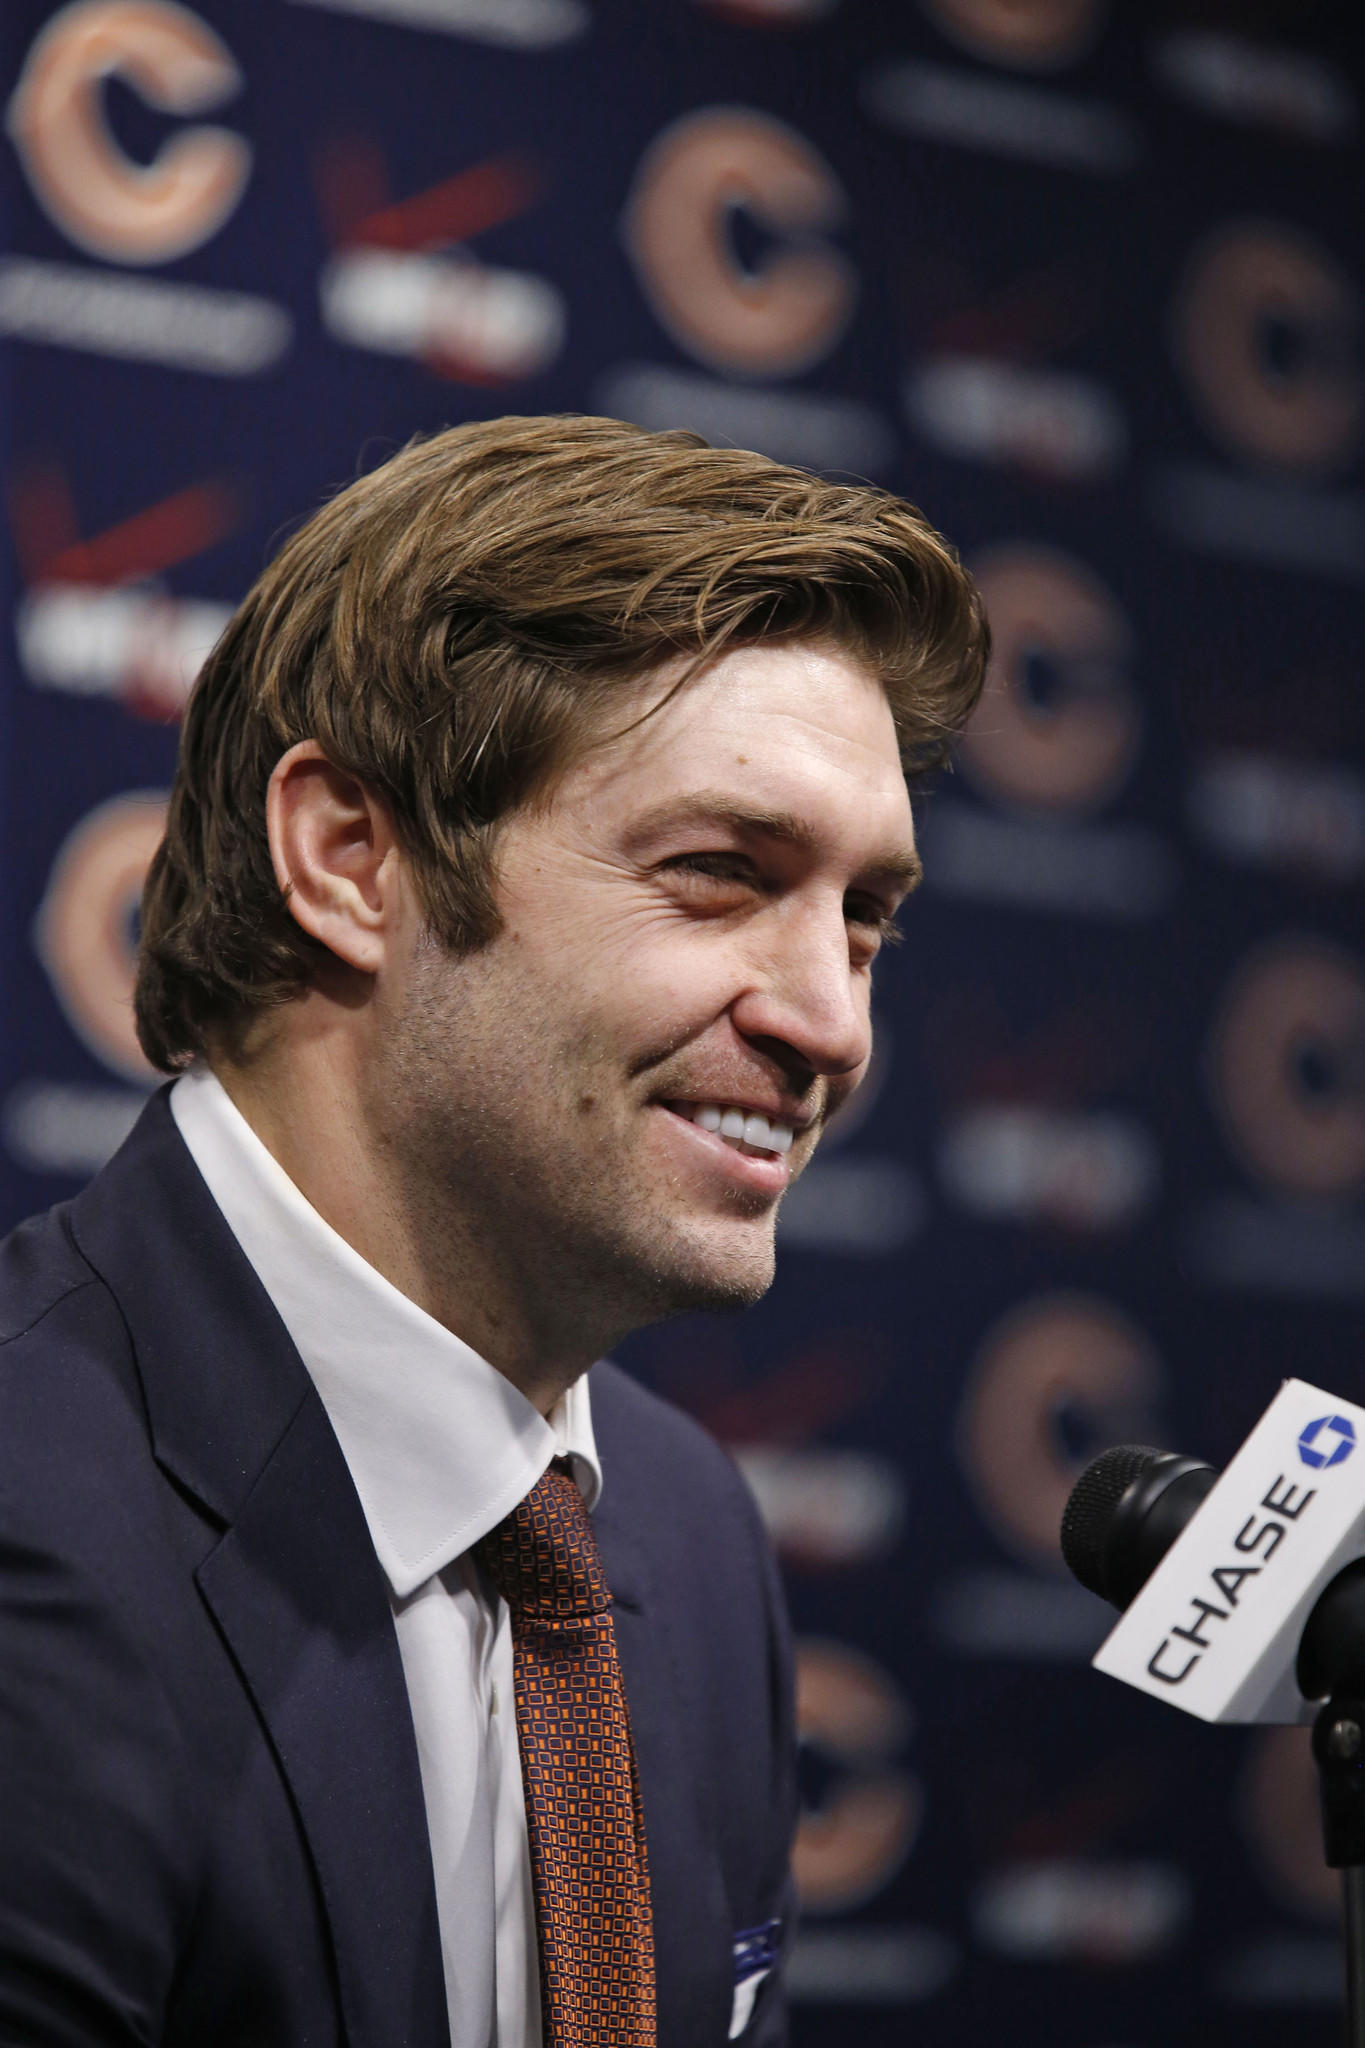 Chicago Bears quarterback Jay Cutler speaks to the media at a press conference regarding his contract extension seen here at Halas Hall in Lake Forest on Thursday, Jan. 2, 2014.